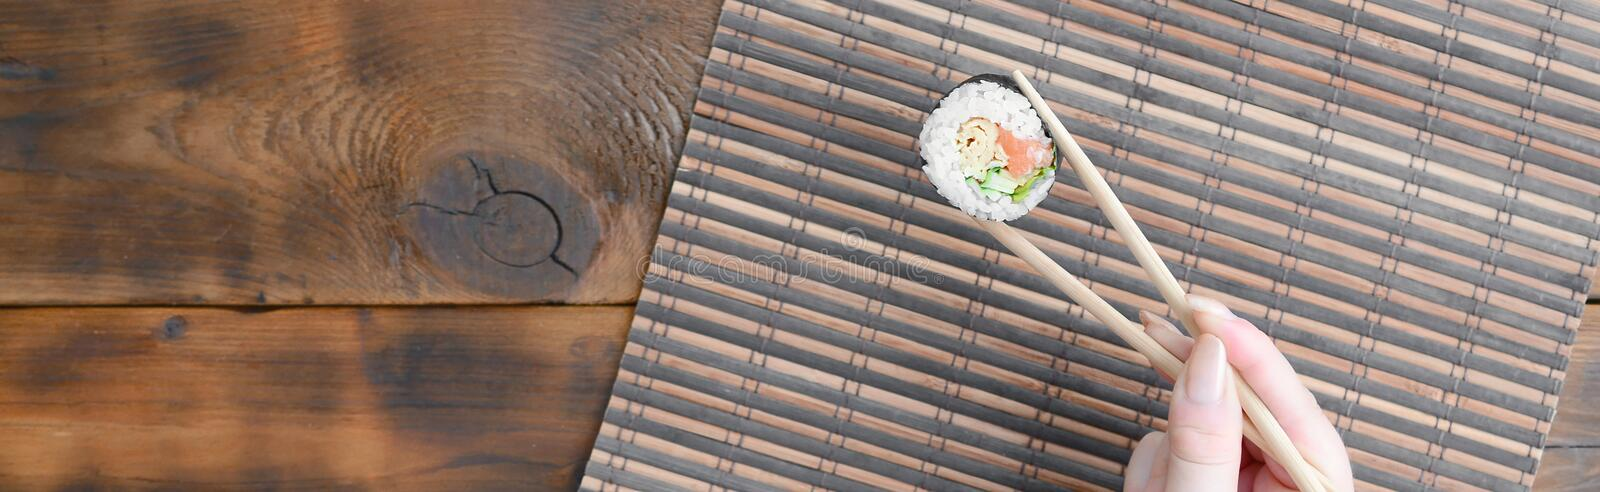 A hand with chopsticks holds a sushi roll on a bamboo straw serwing mat background. Traditional Asian food royalty free stock image